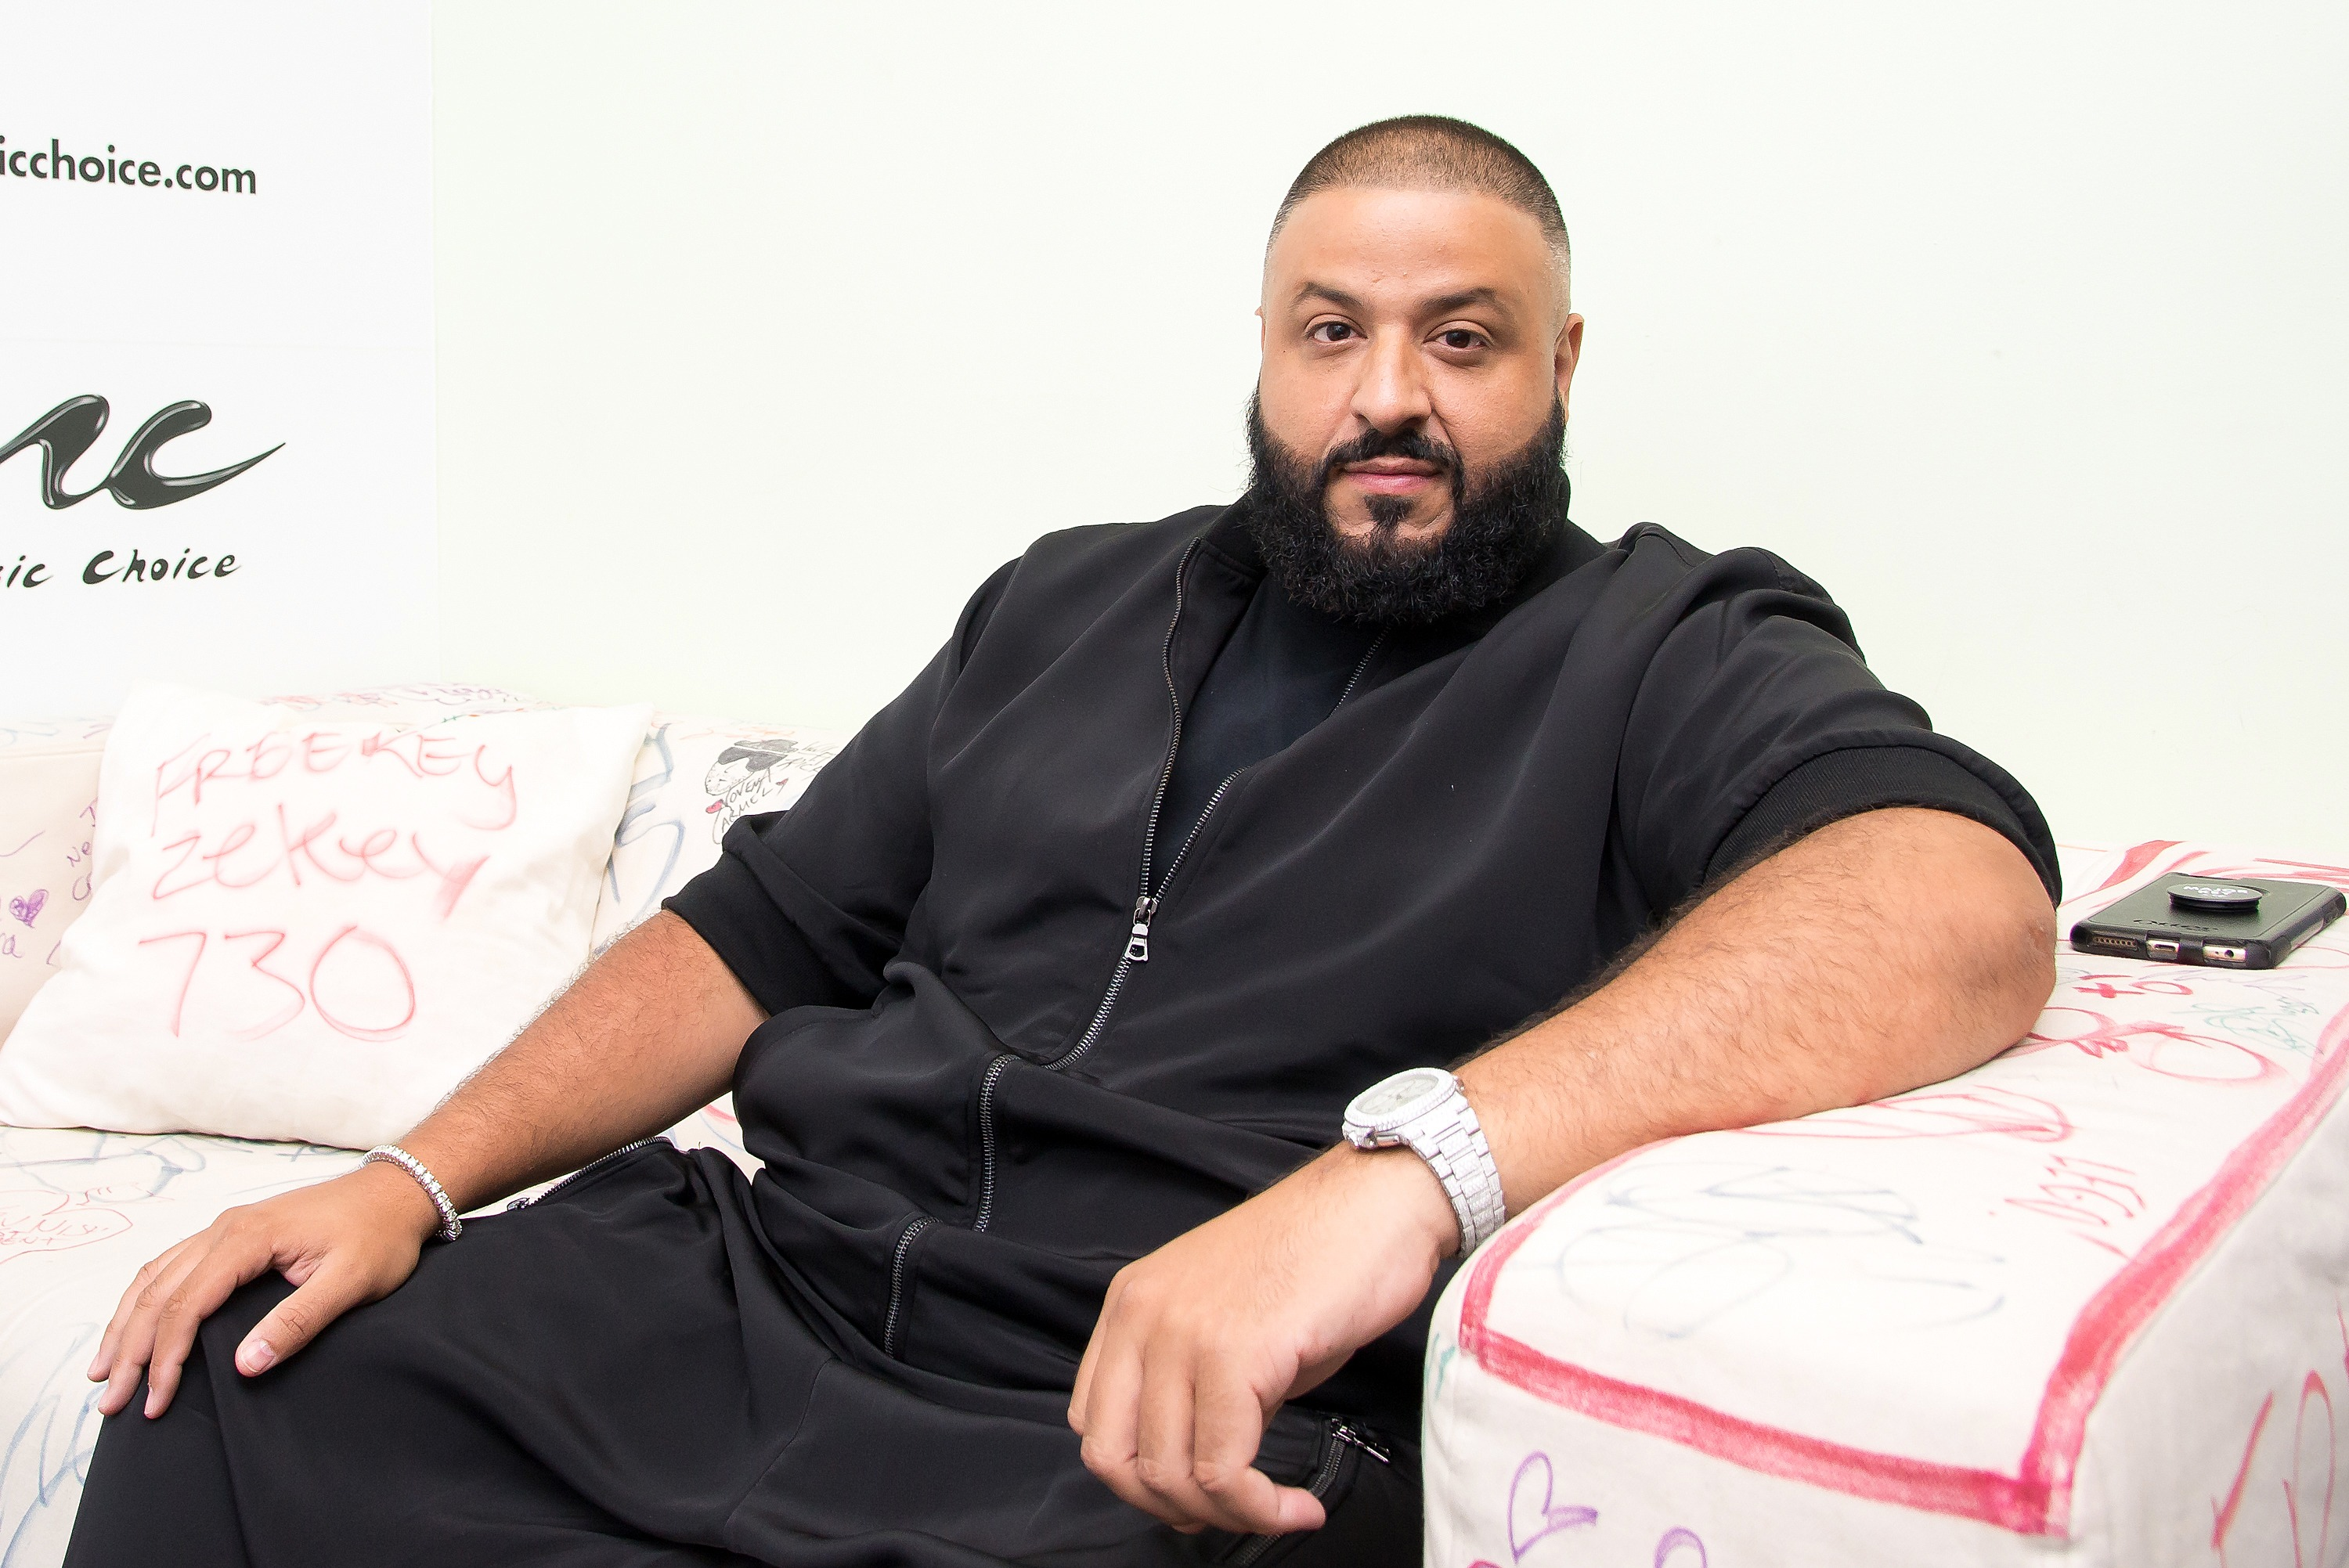 DJ Khaled poses as Lyft driver, unsurprisingly does not fool people